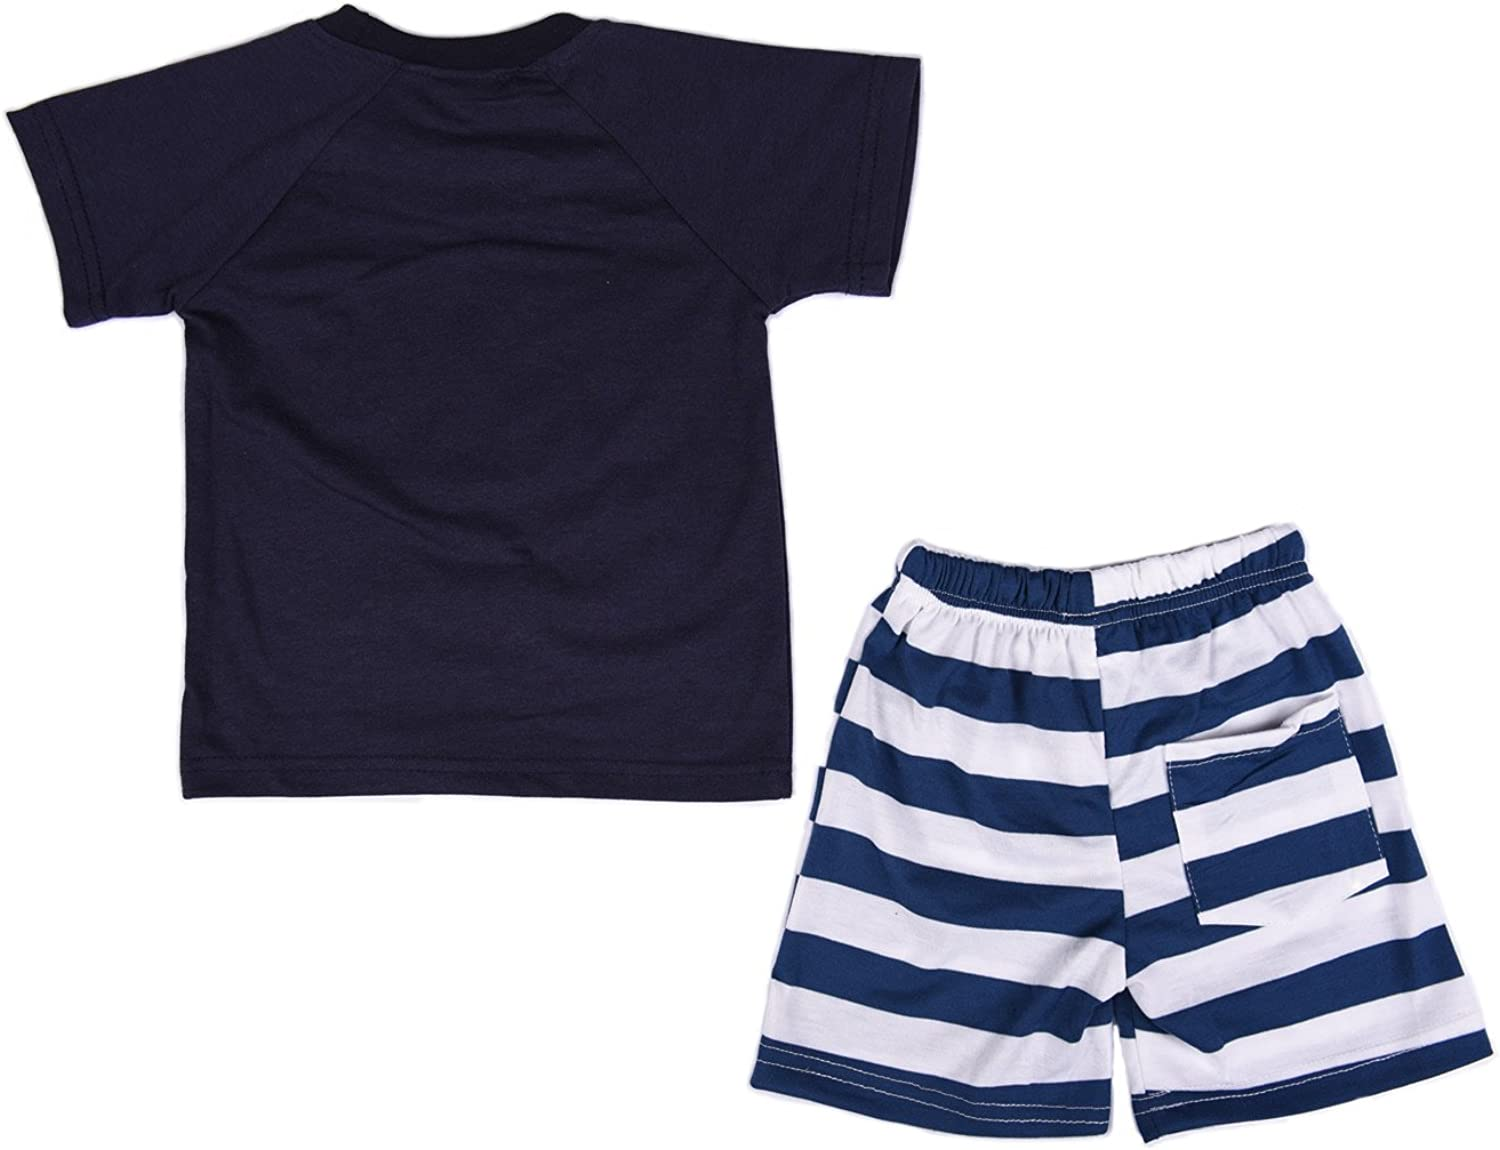 Kids Boys 2 Piece Short Sleeve Tshirt and Shorts Set Outfits for 1 to 5 Age Baby